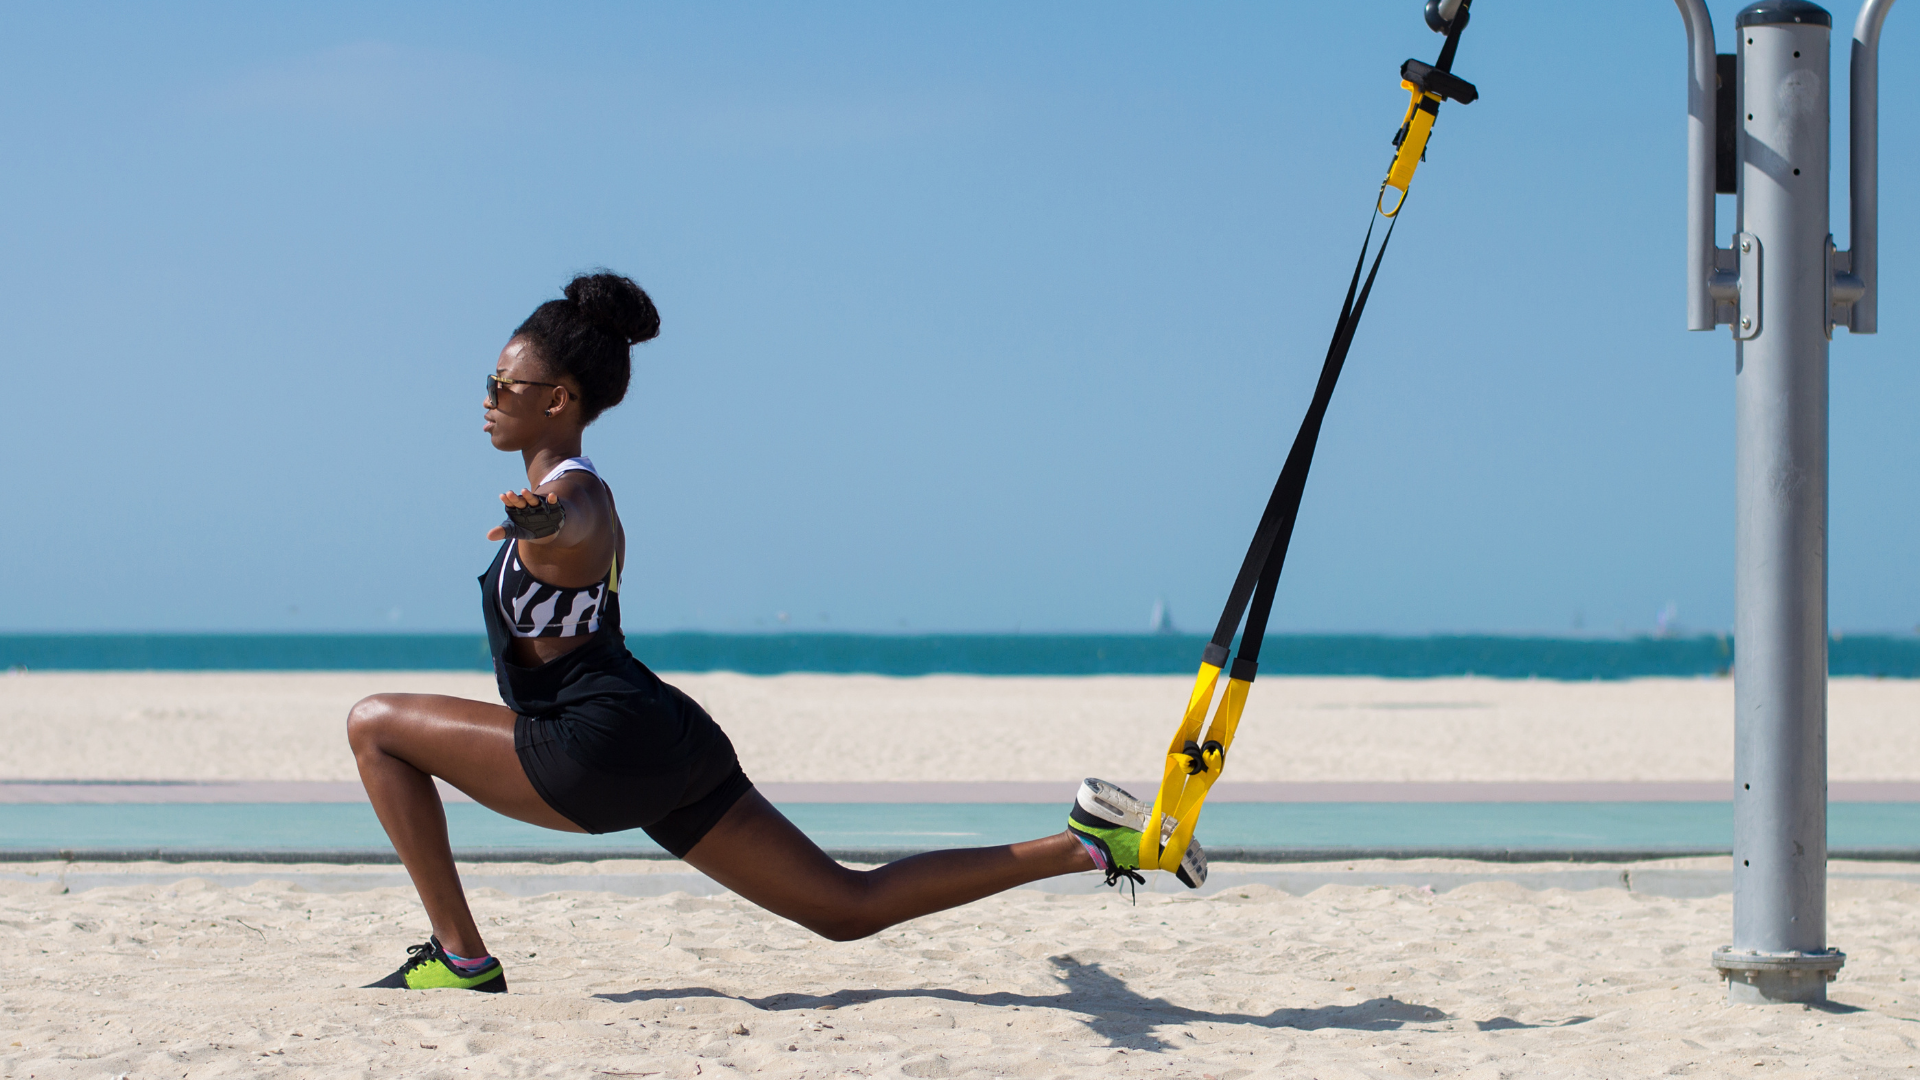 athlete balancing with the help of suspension trainer Australia beach